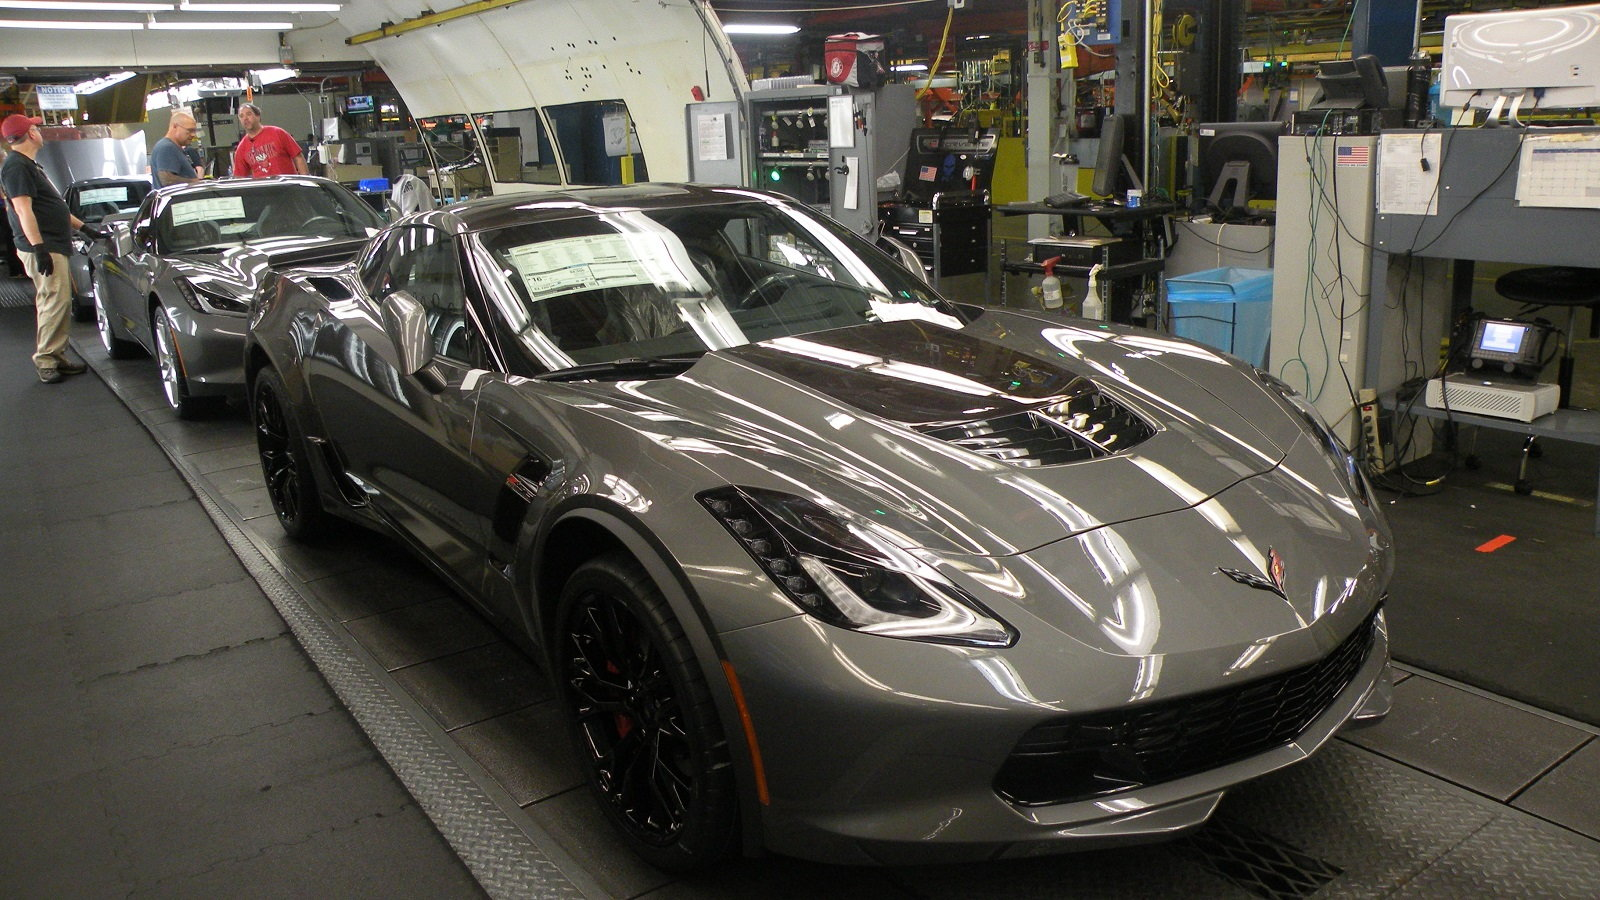 6 Things to See and Do at the Bowling Green Corvette Factory